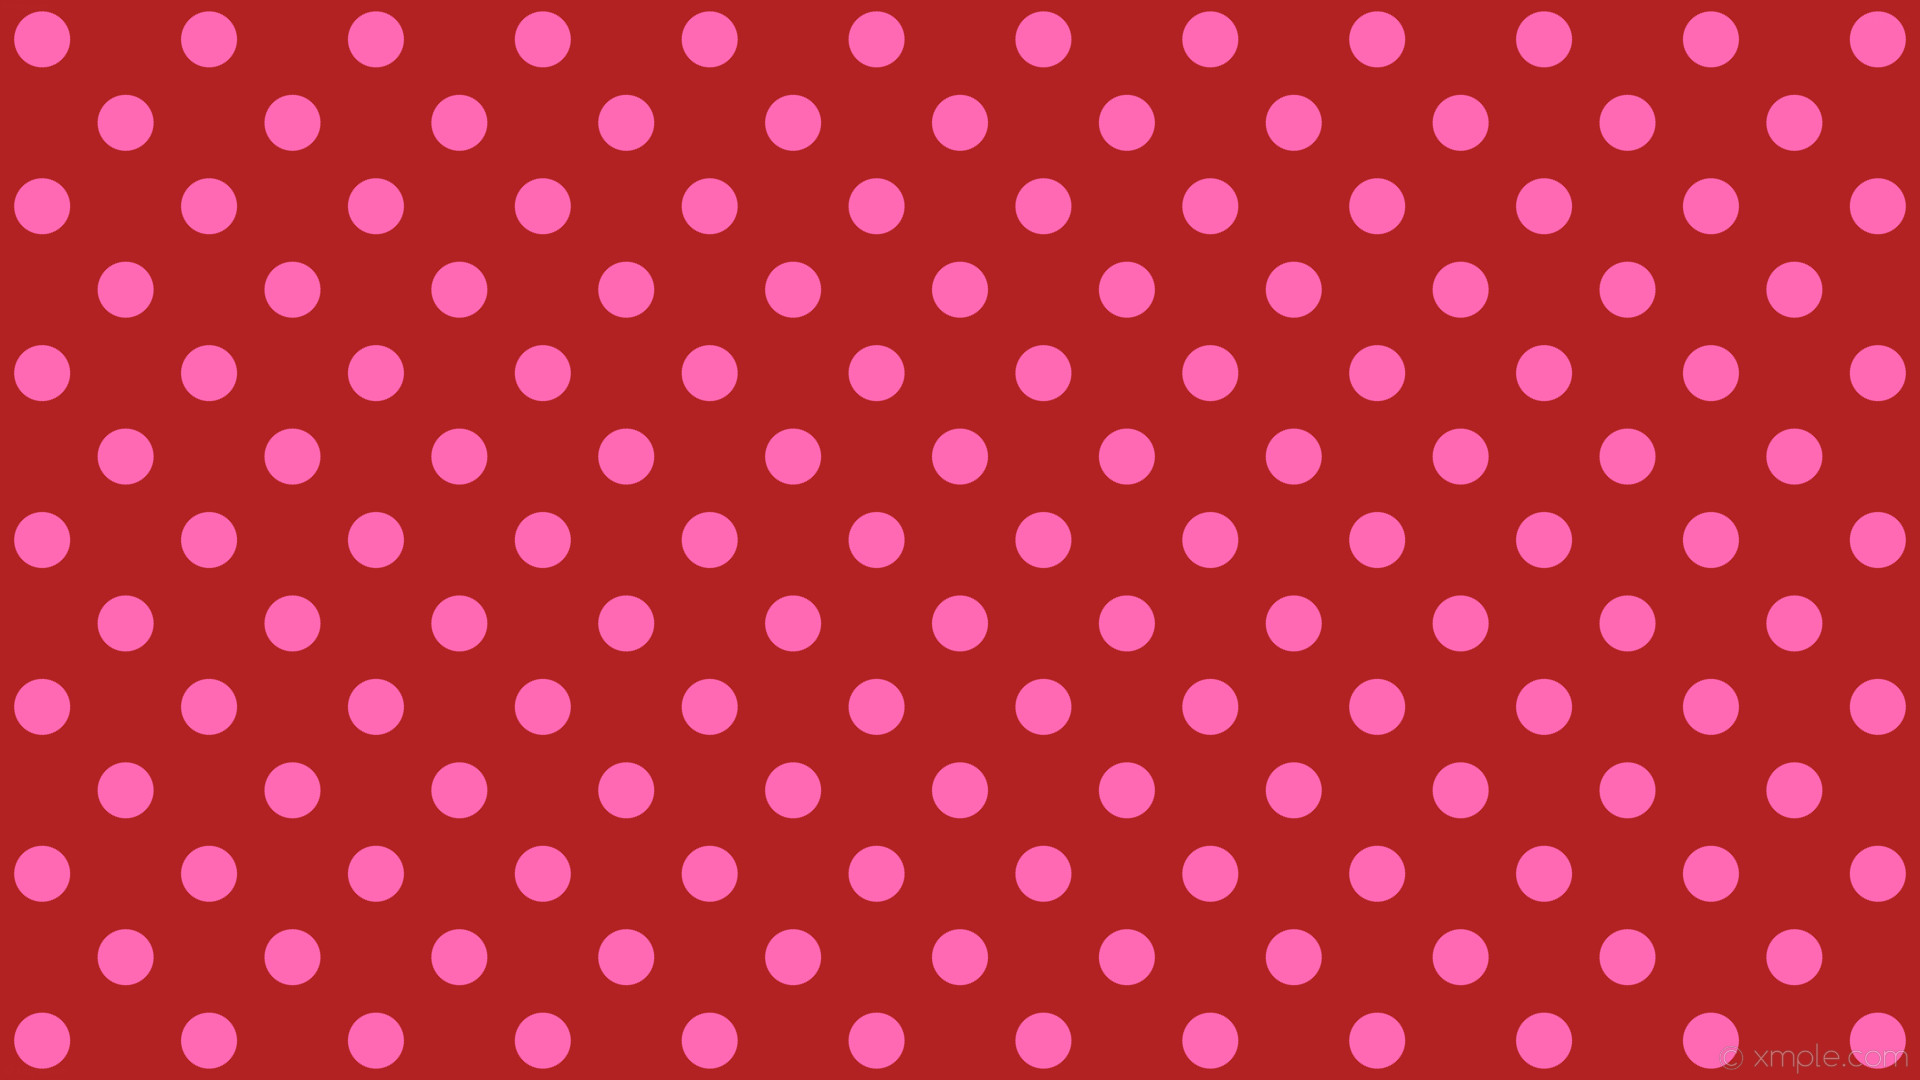 1920x1080 wallpaper pink polka dots spots red fire brick hot pink #b22222 #ff69b4 225°